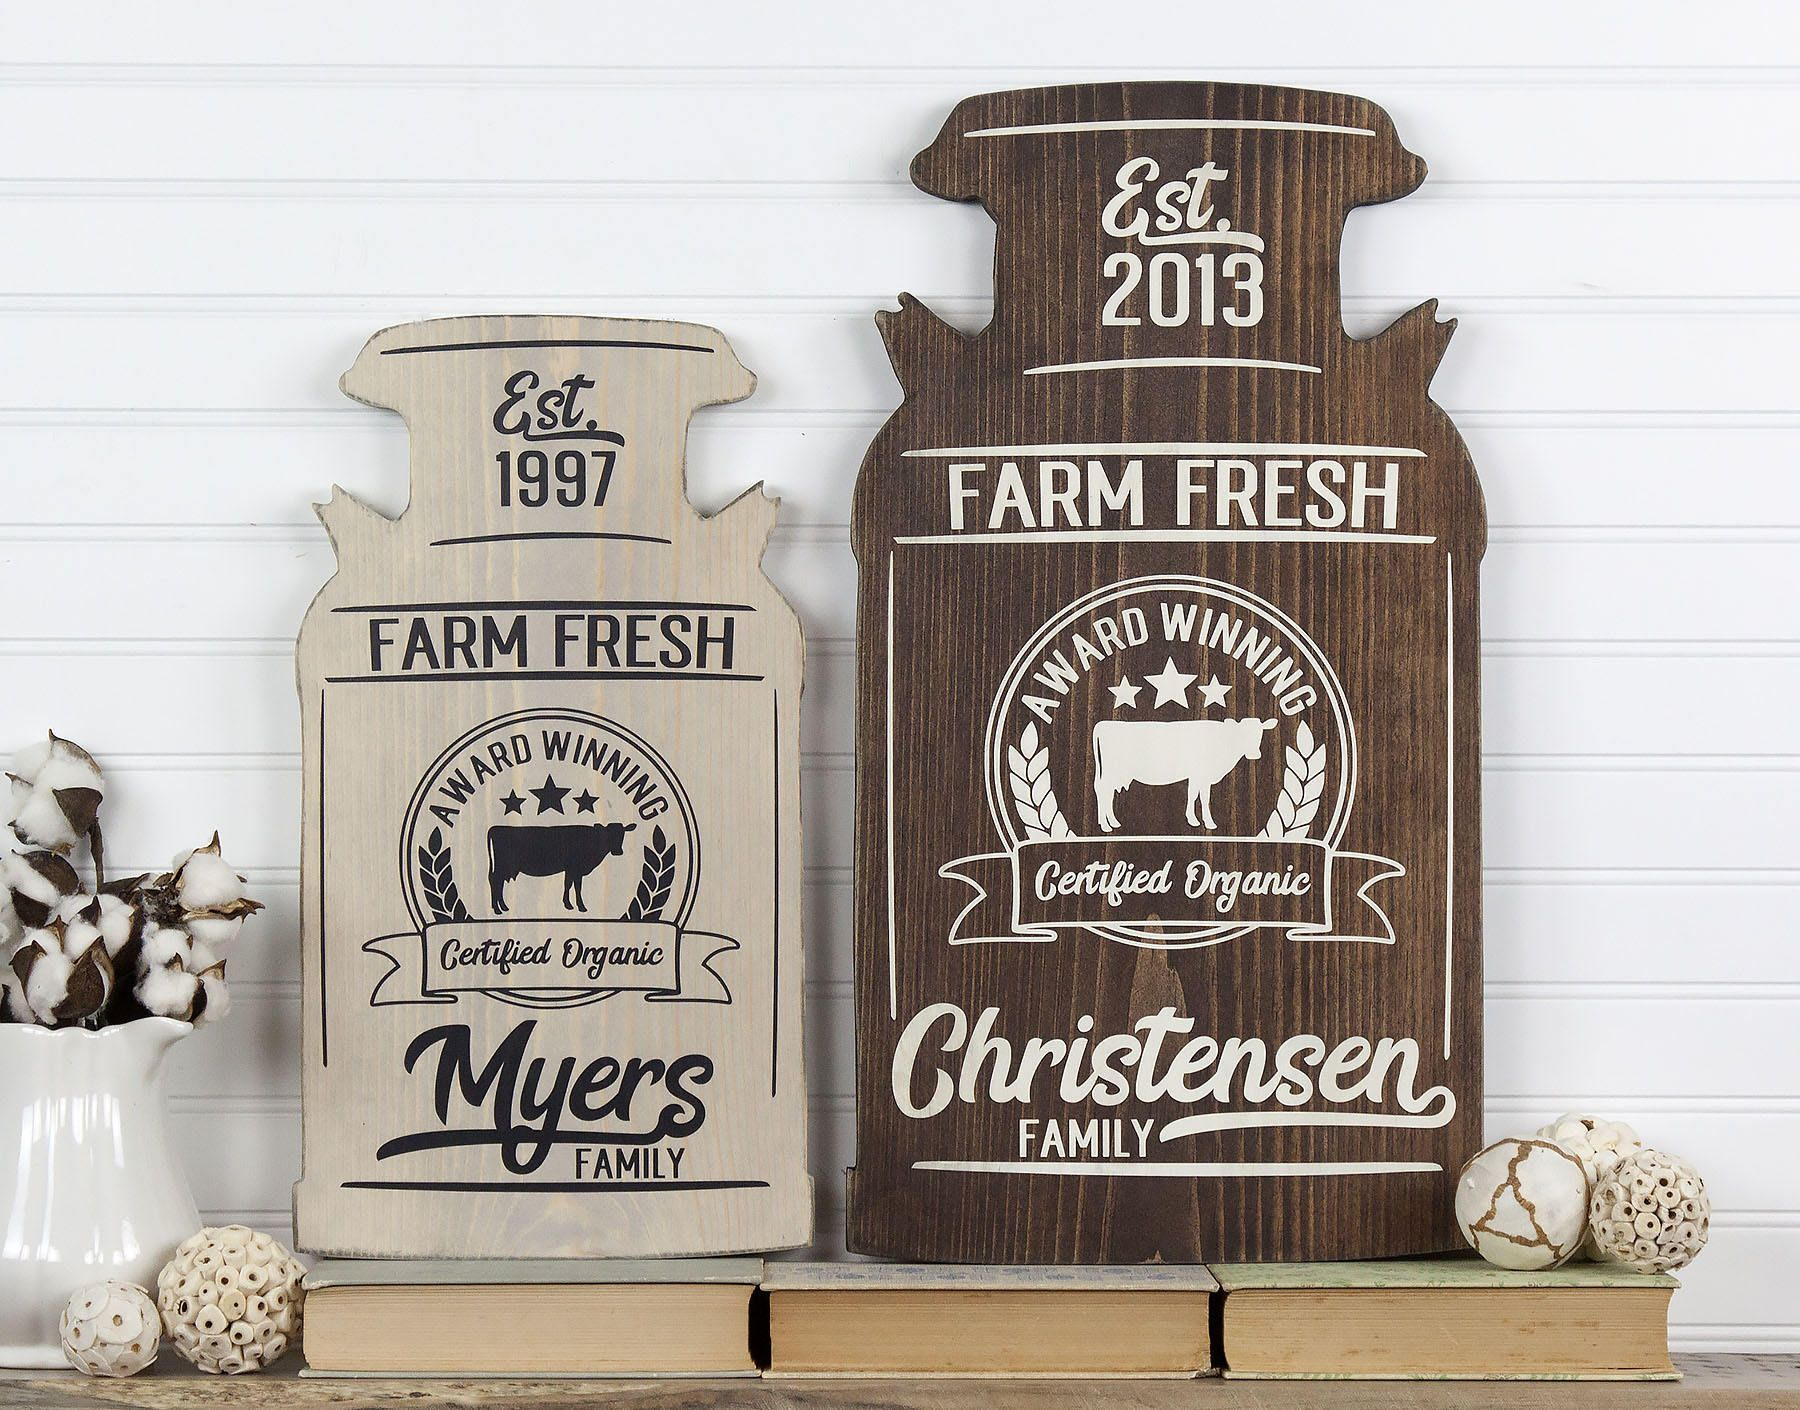 Cow Themed Decor For Your Home Or Office Sprinkled And Painted At Ka Styles Co Cow Decor Farm Fresh Milk Wood Cutouts